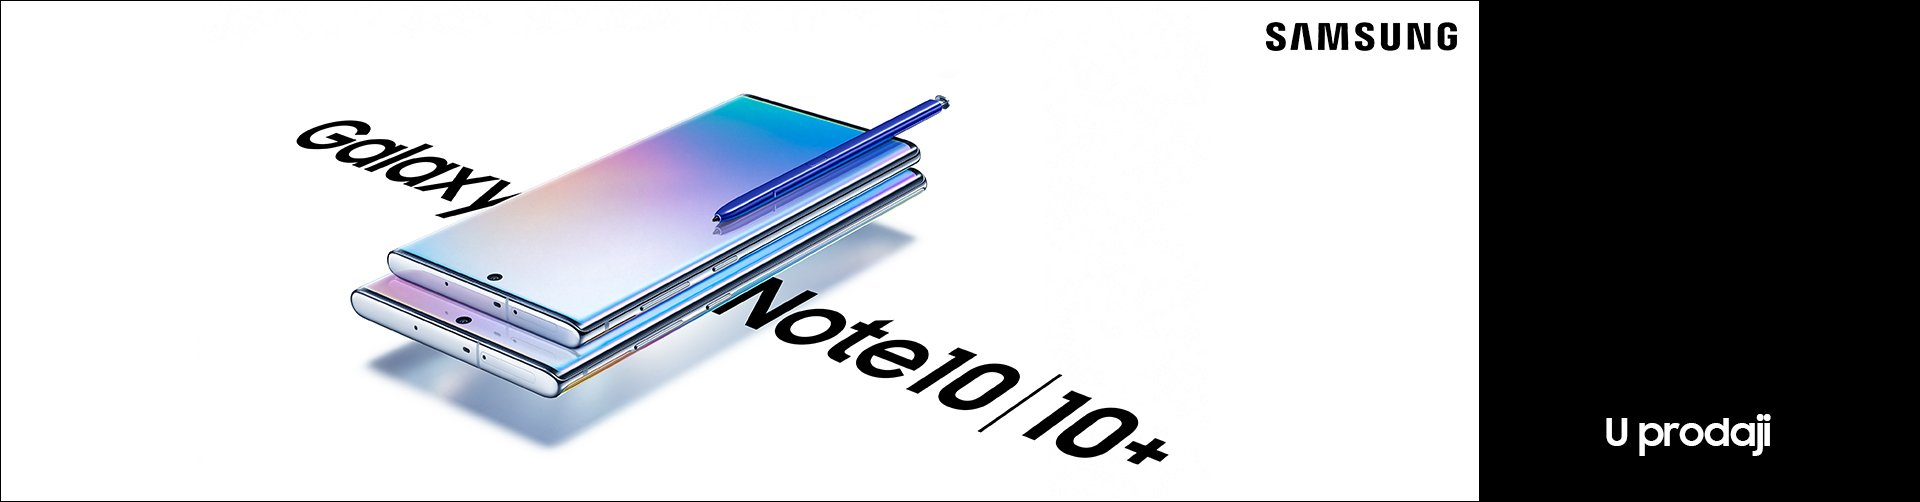 Galaxy Note10 i Note10+